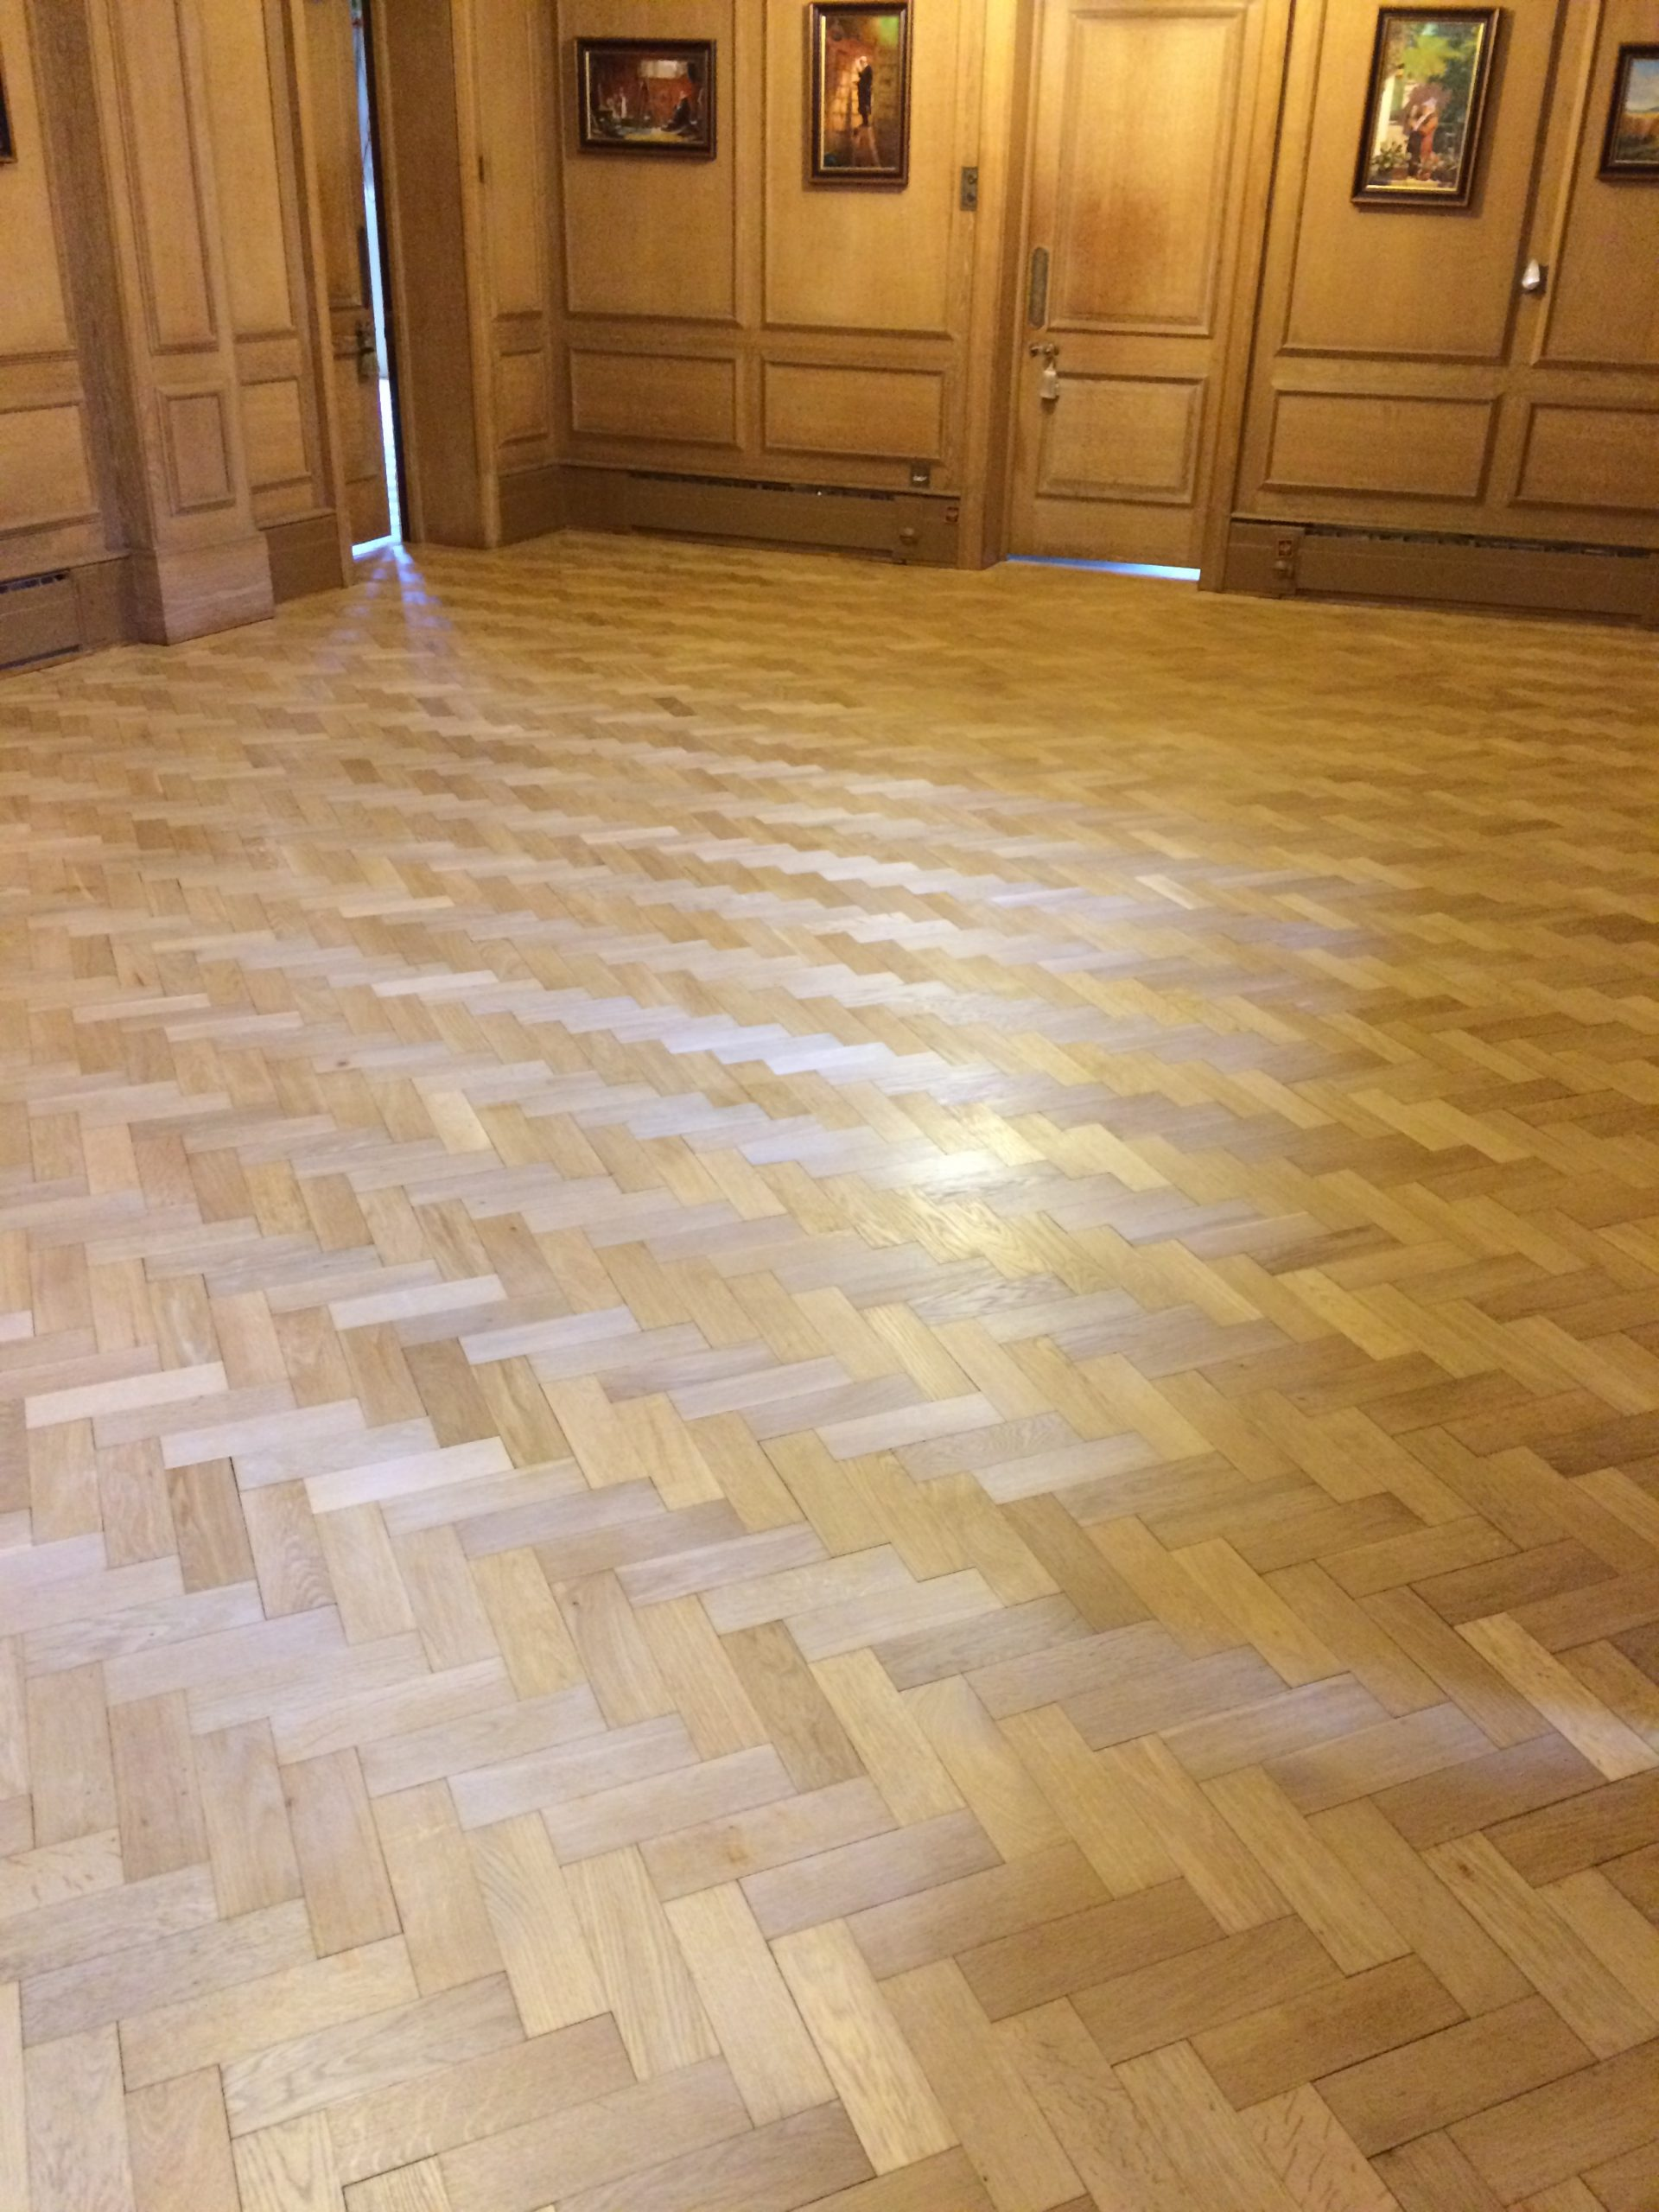 antique oak flooring after sanding and staining